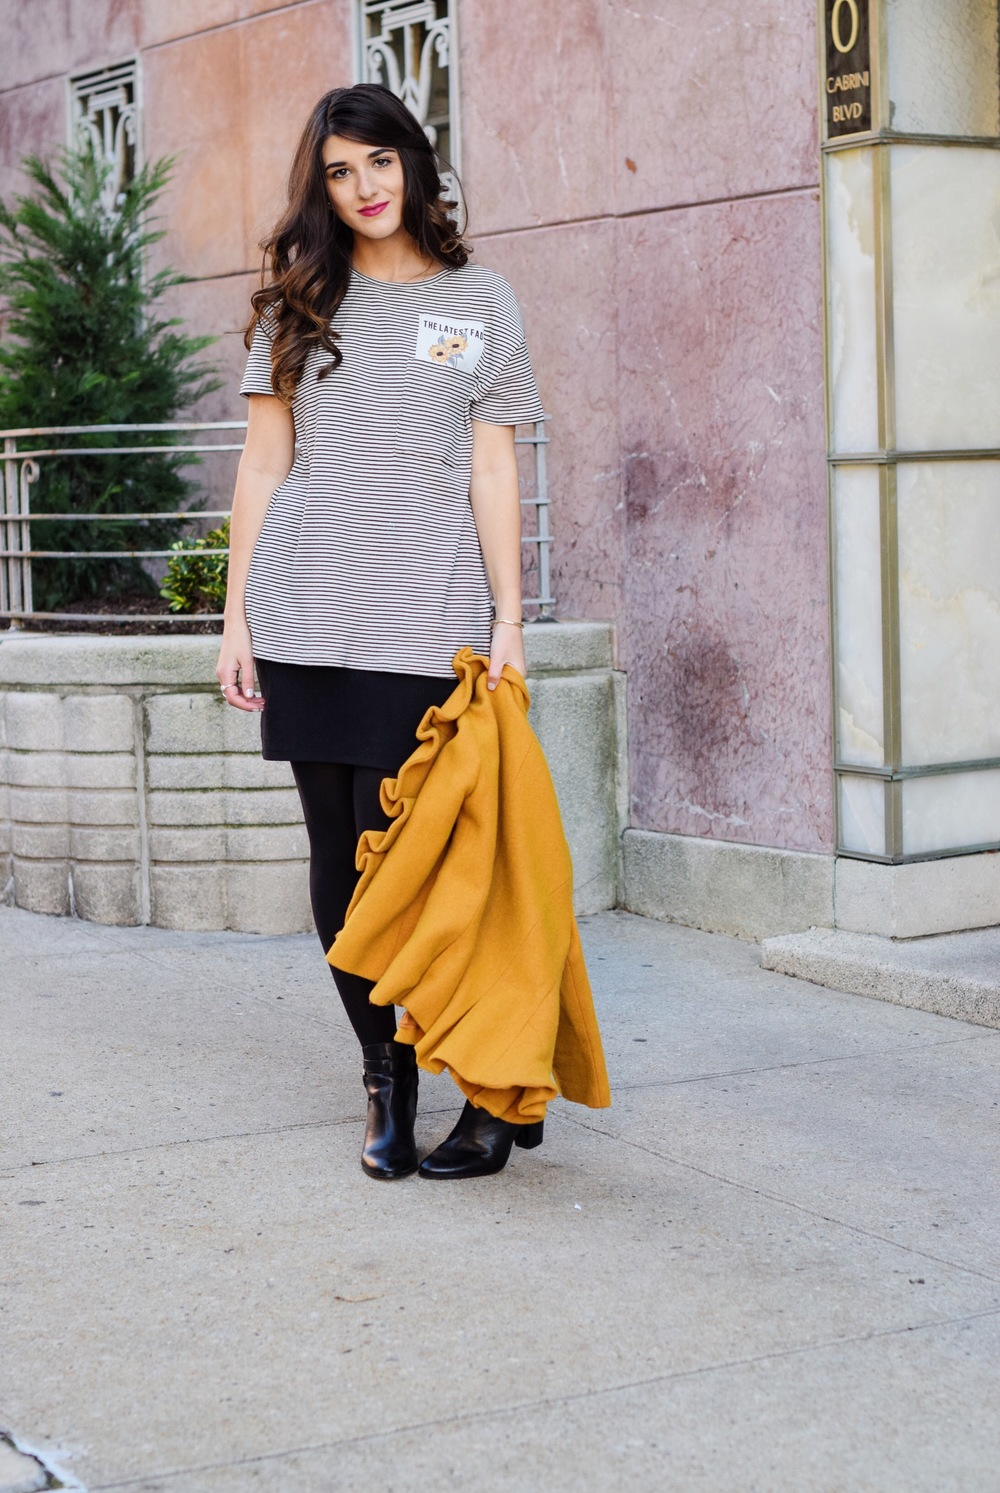 Yellow Ruffled Jacket Striped Tee Louboutins & Love Fashion Blog Esther Santer NYC Street Style Blogger Zara Pocket Tshirt Outfit OOTD Inspo Inspiration Photoshoot New York City Black Booties Louise et Cie Nordstrom Hair Shoes Fall Girl Women Shopping.jpg